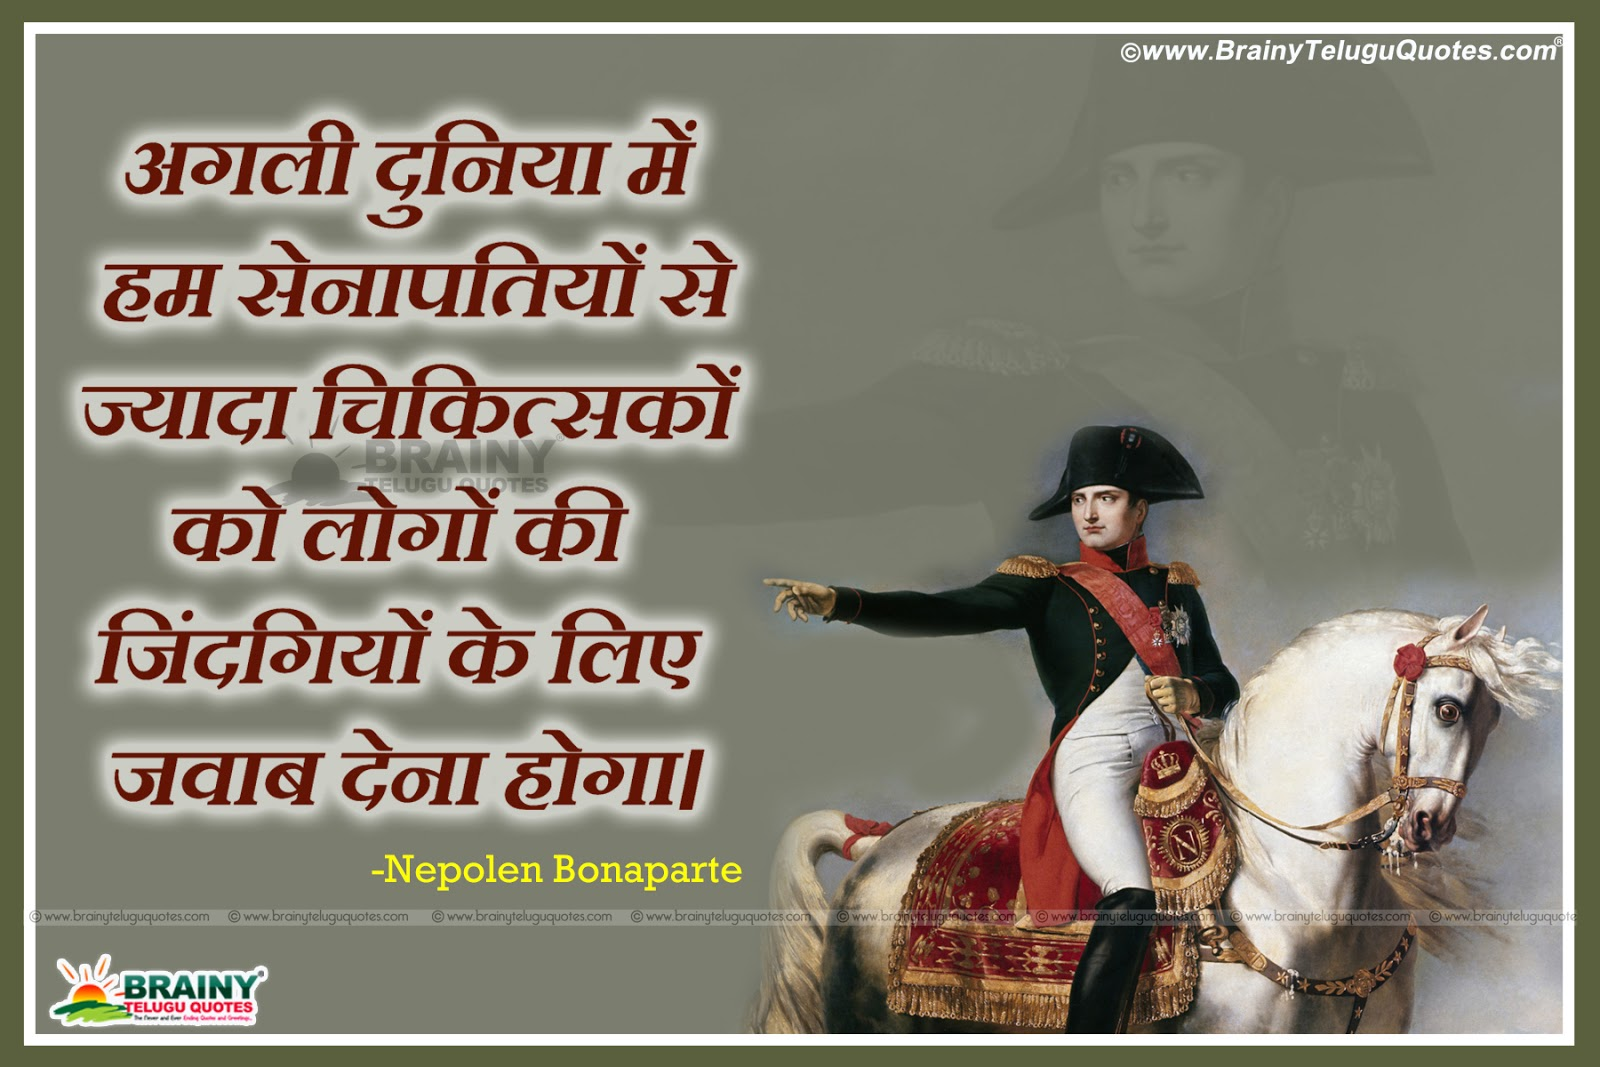 napoleon bonaparte essay napoleon bonaparte hindi quotes inspirational quotes of napoleon napoleon bonaparte hindi quotes inspirational quotes of napoleon